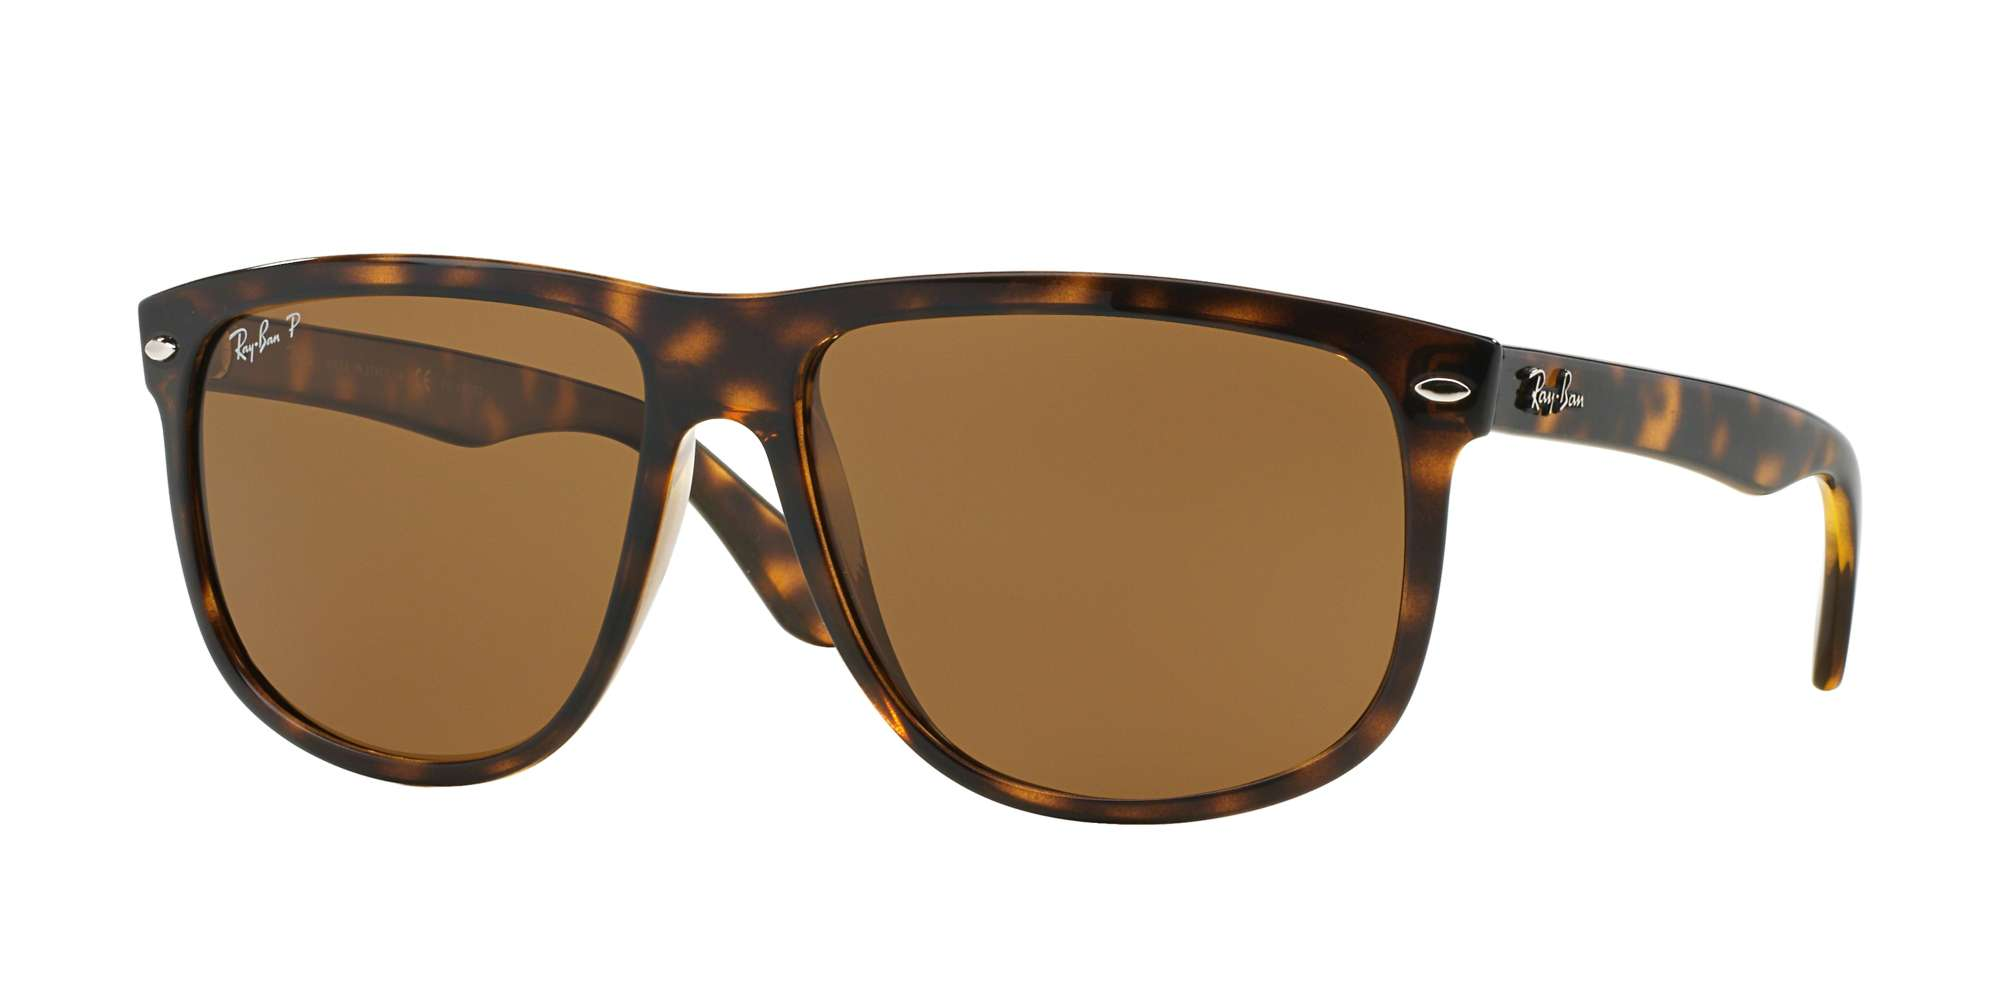 LIGHT HAVANA / CRYSTAL BROWN POLARIZED lenses